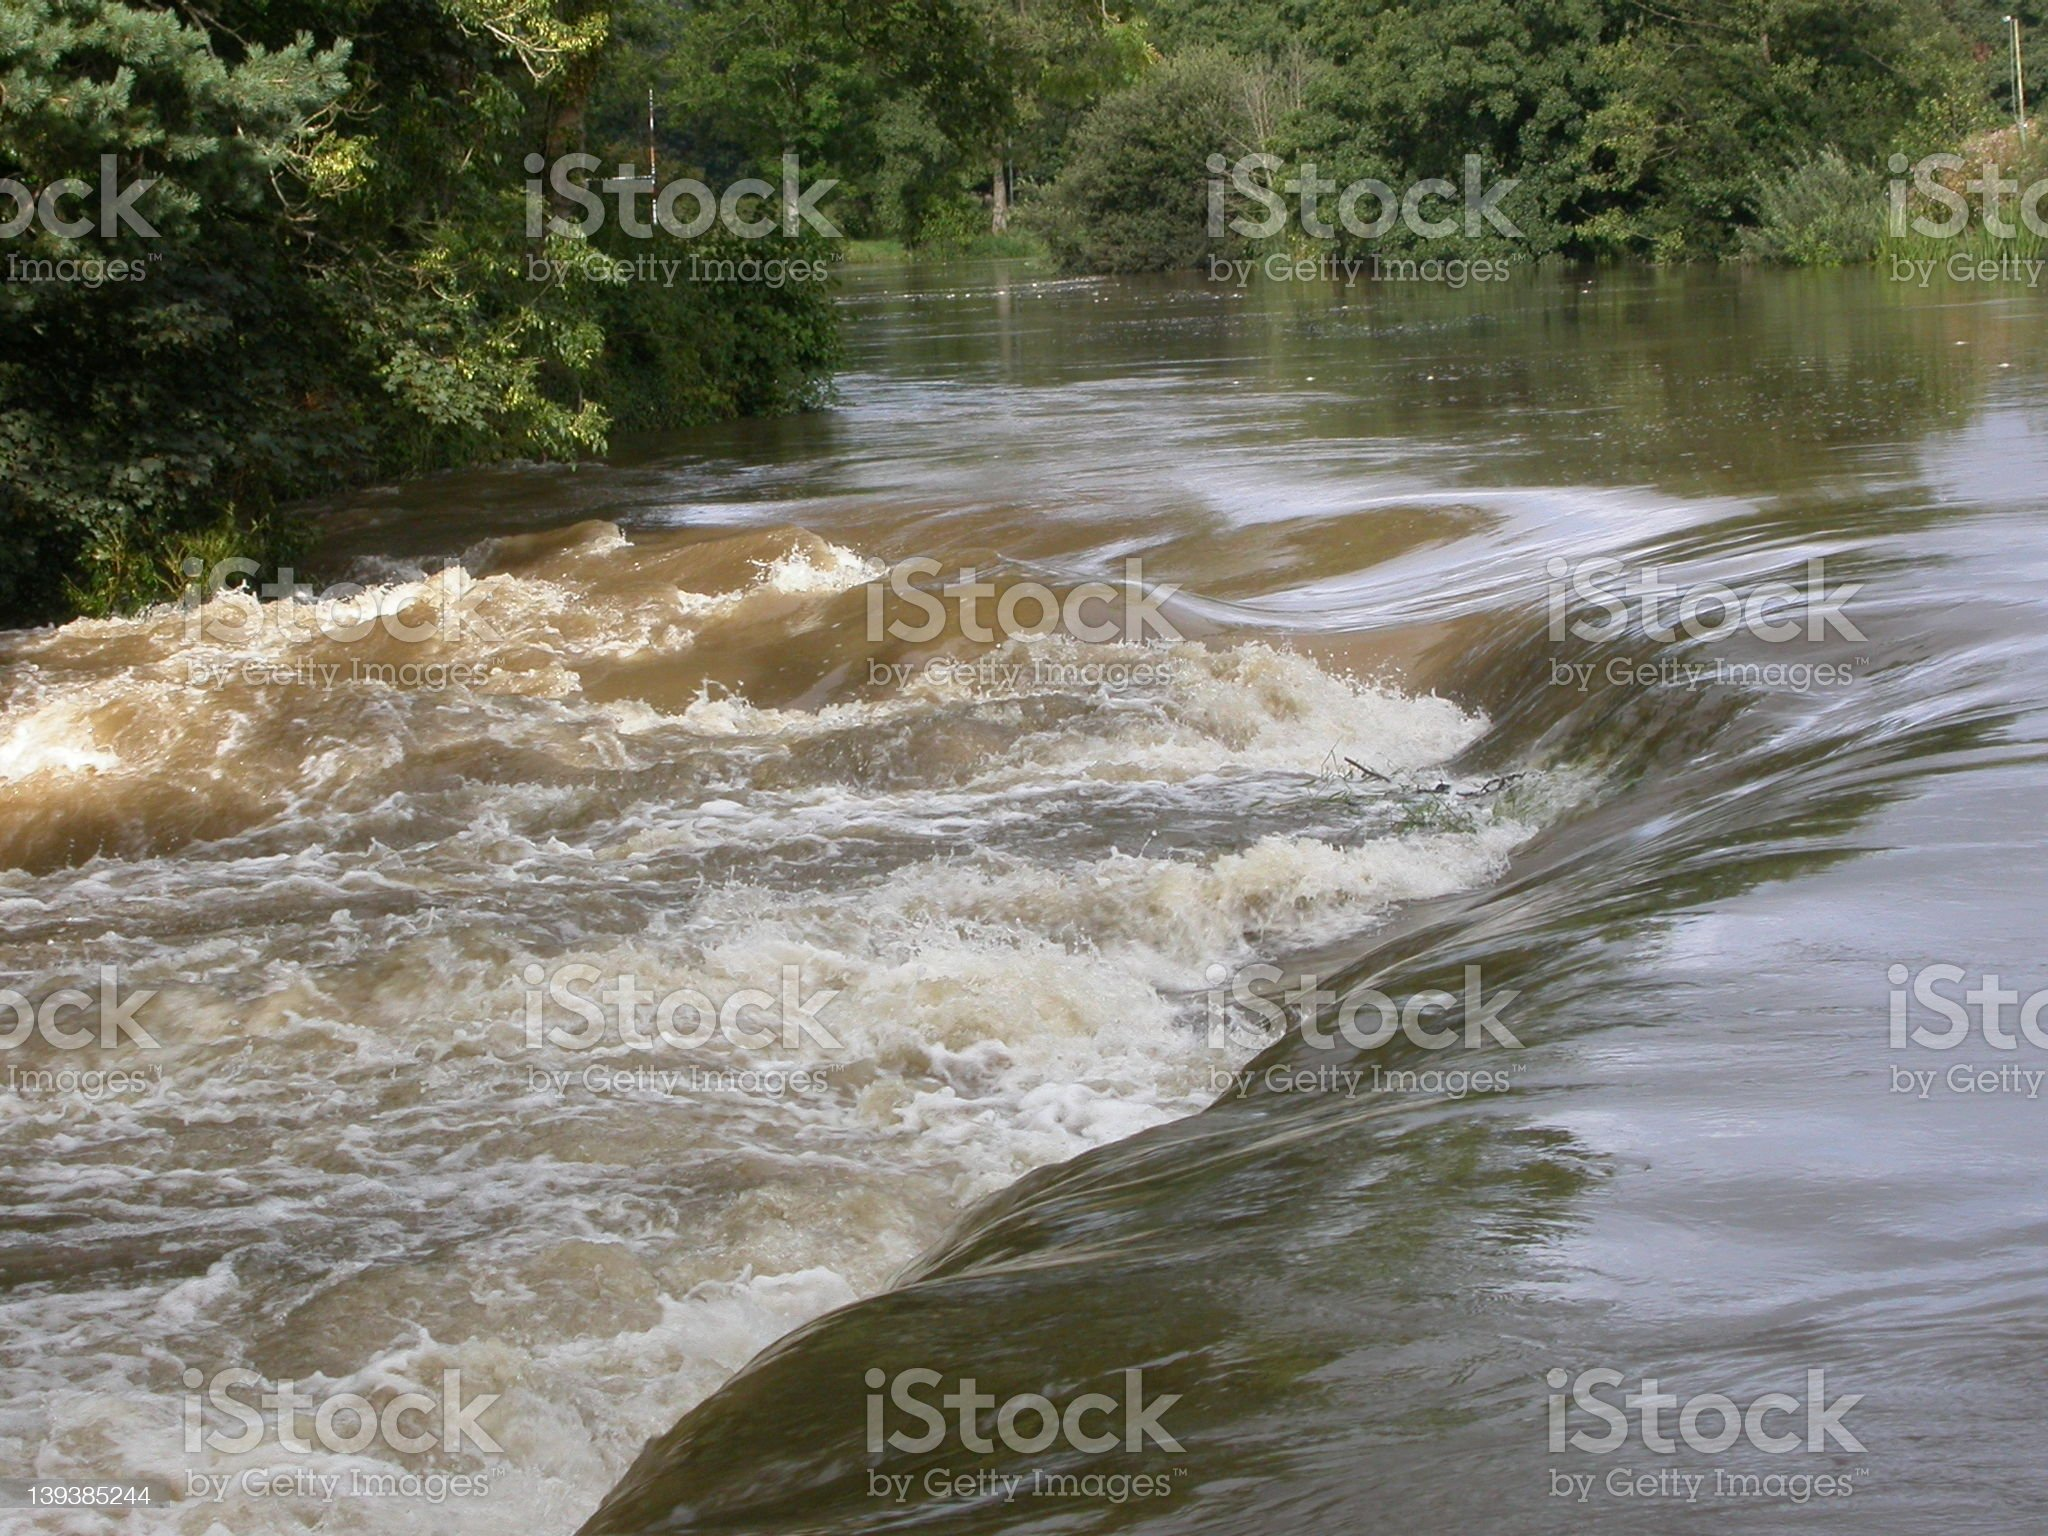 River in Flood 08 royalty-free stock photo